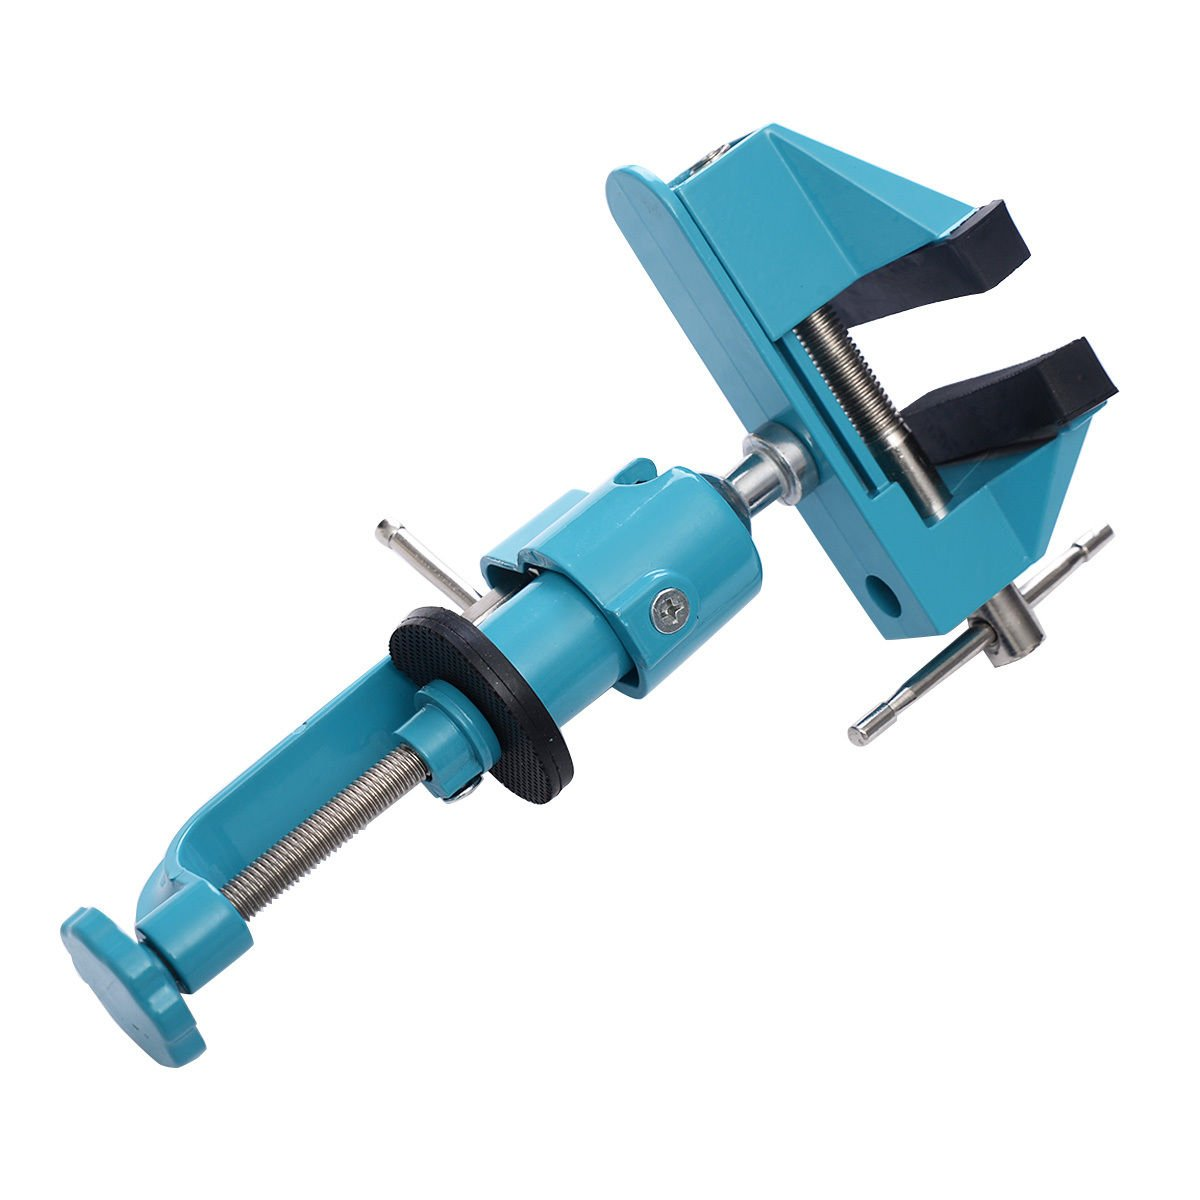 Goplus Bench Vise Swivel 3'' Tabletop Clamp Vice Tilts Rotate 360° Universal Work by Goplus (Image #3)